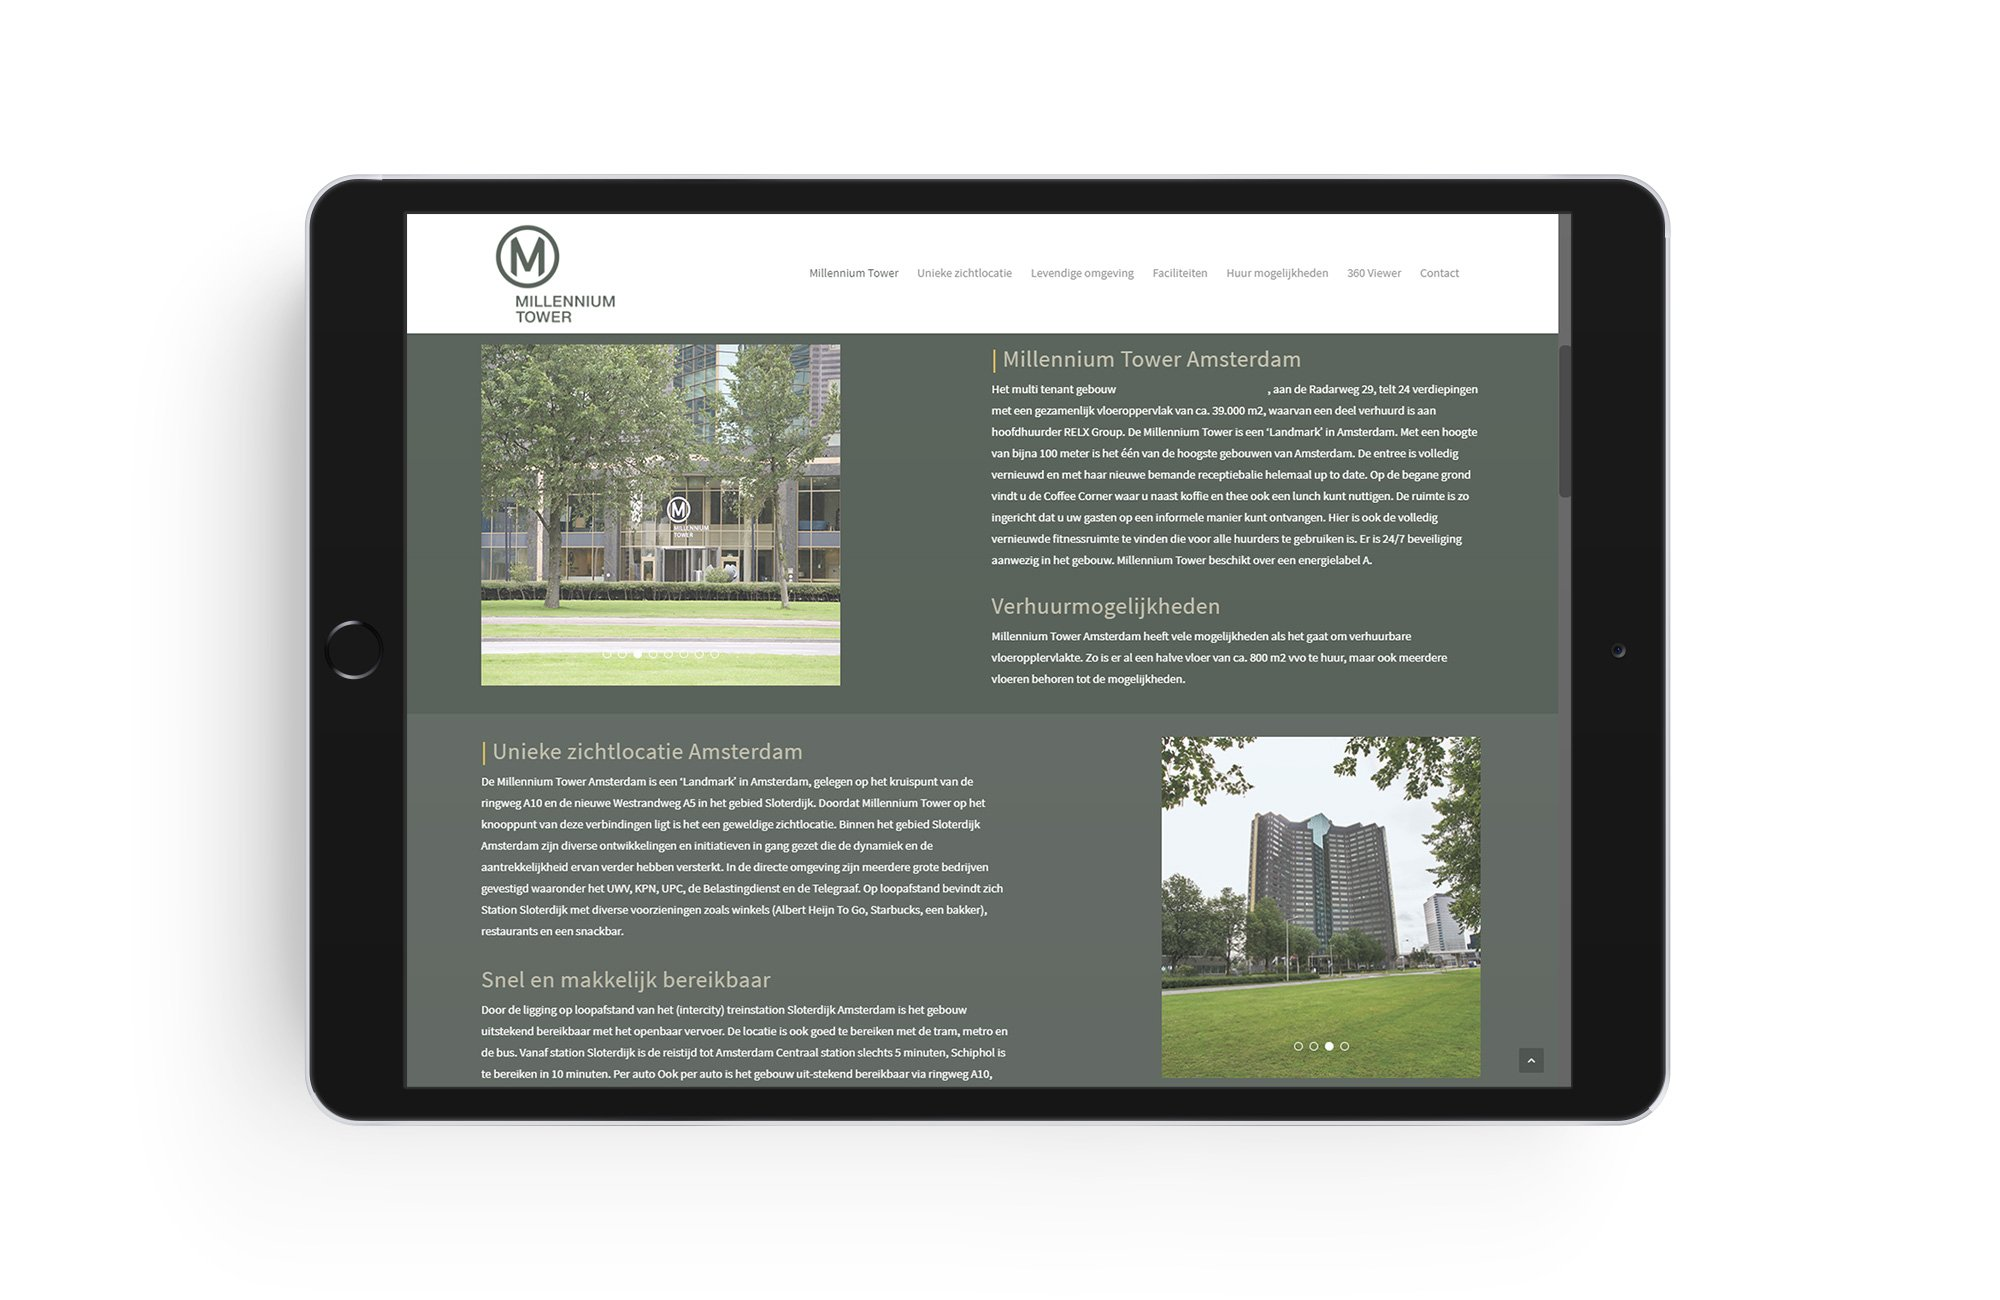 innovative-digital-amsterdam-webdesign-millennium-tower-website-tablet-01